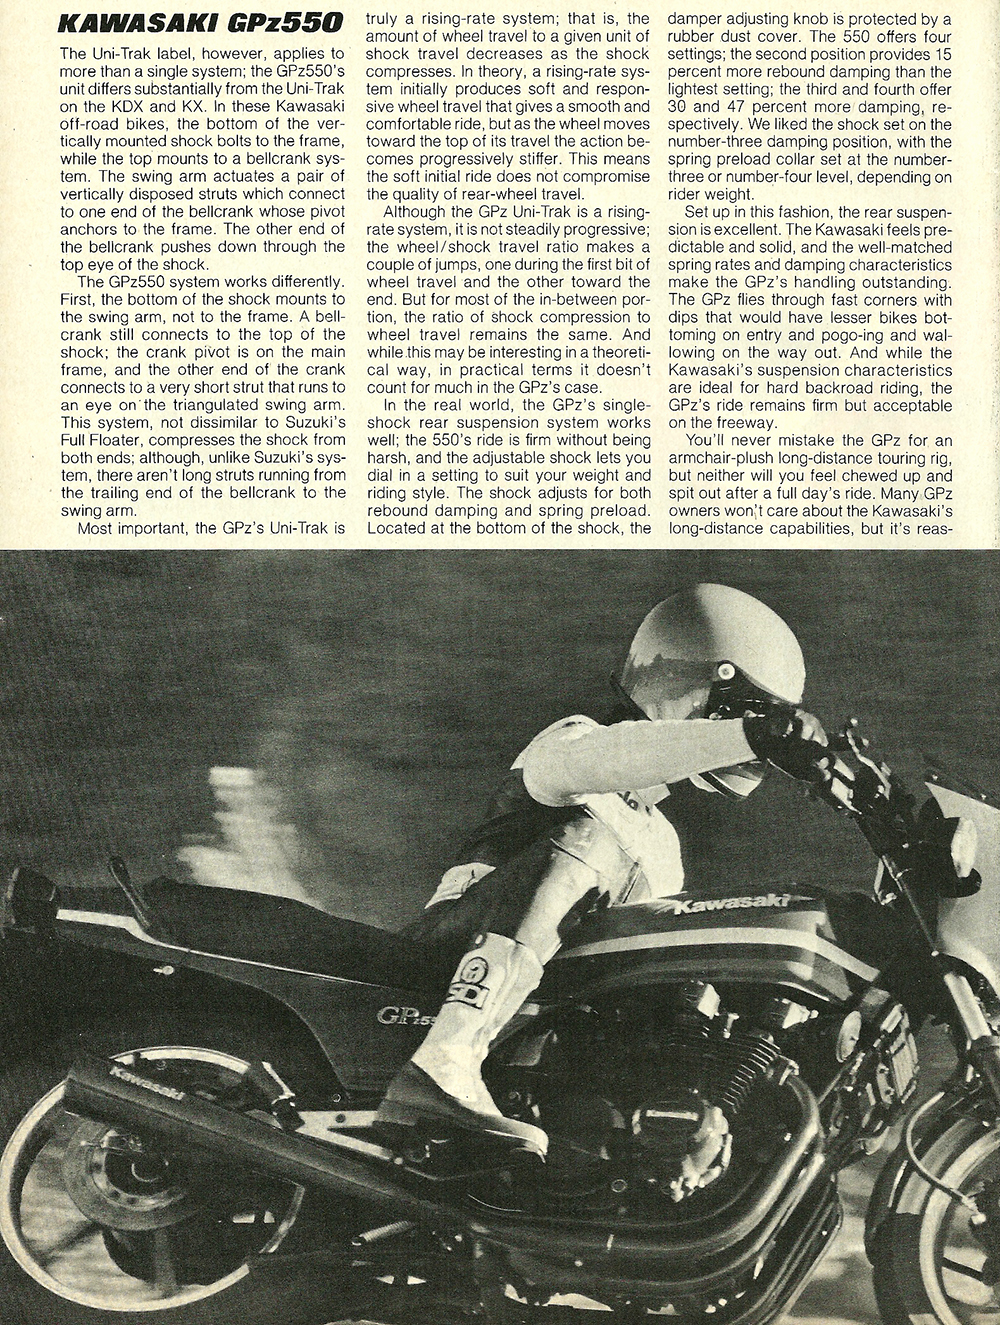 1982 Kawasaki GPz550 road test 03.jpg